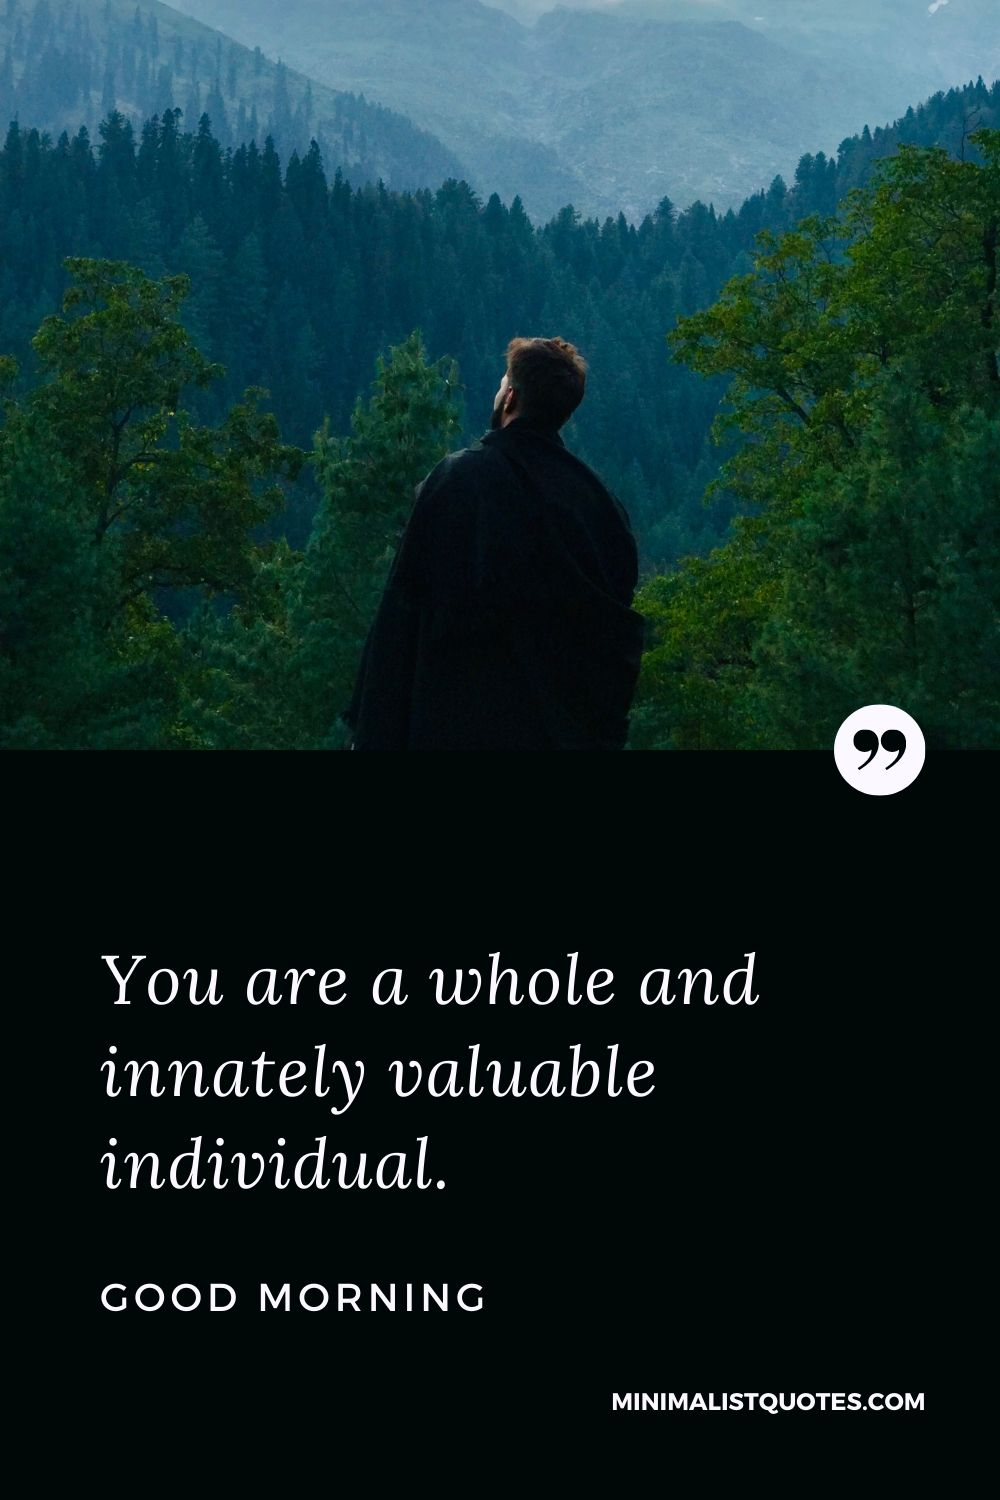 Good Morning Wish & Message With Image: You are a whole and innately valuable individual.